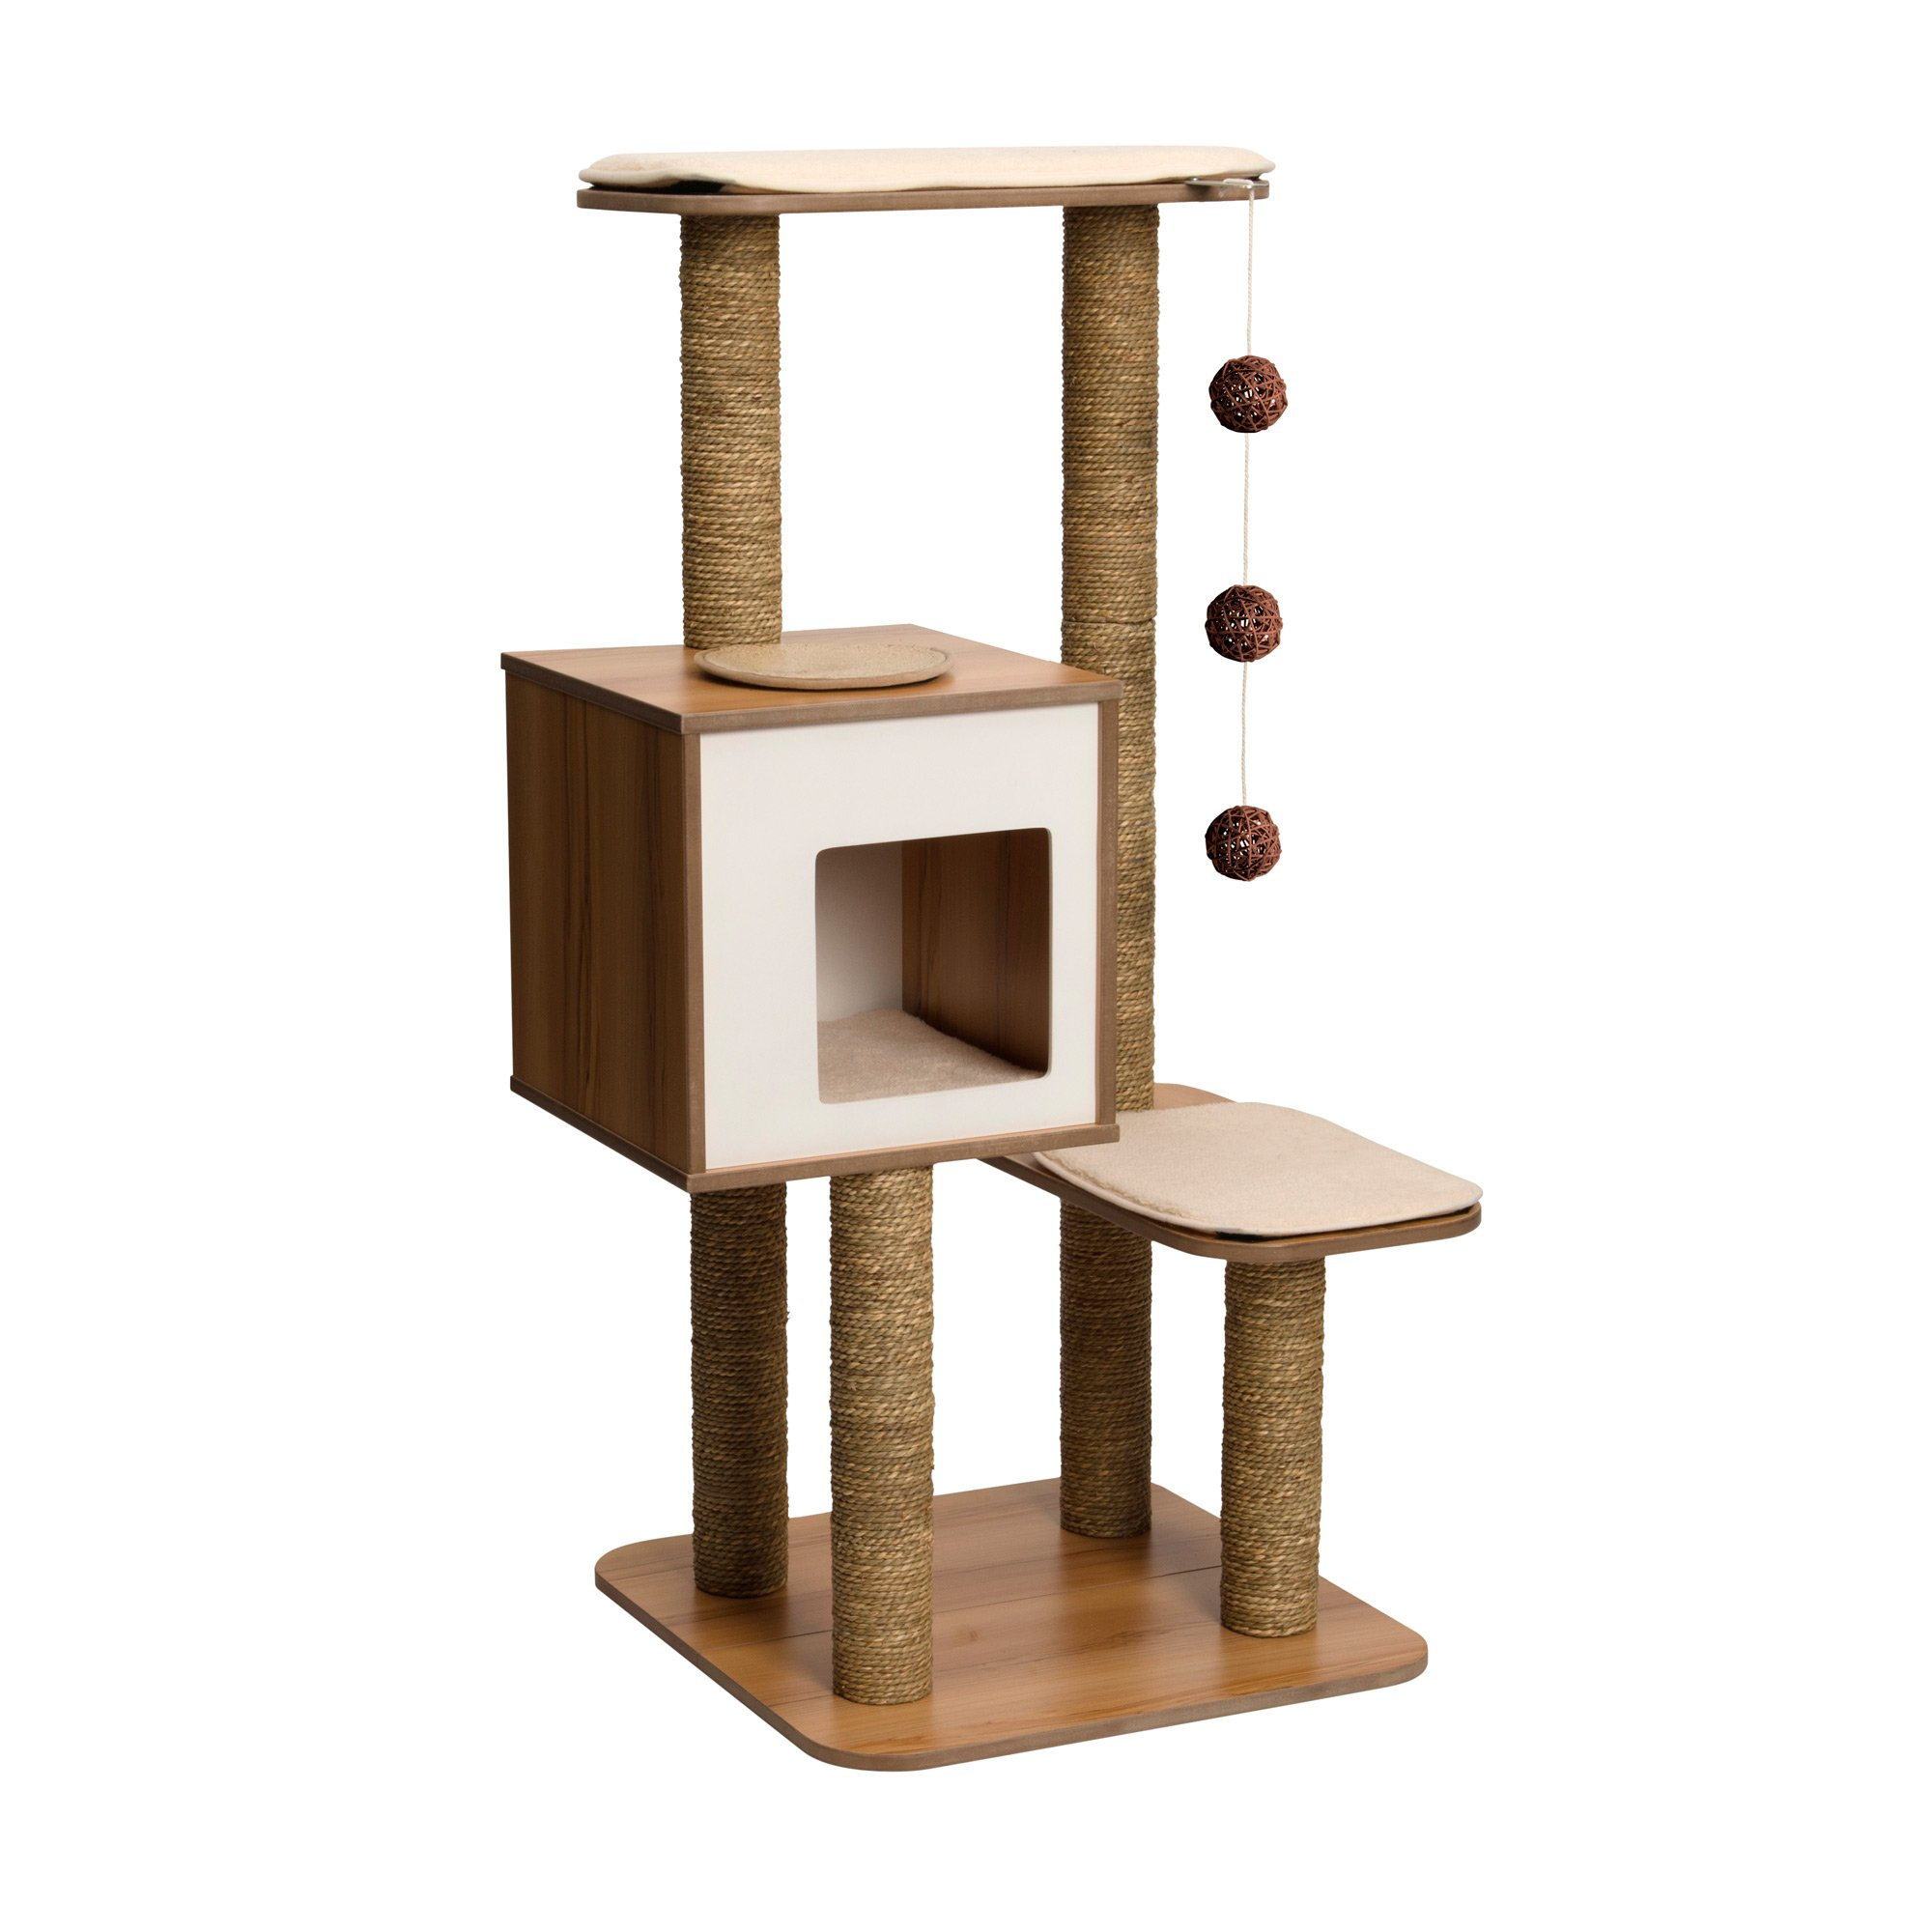 Cat Furniture For Sale Vesper Cat Furniture V High Base Petco